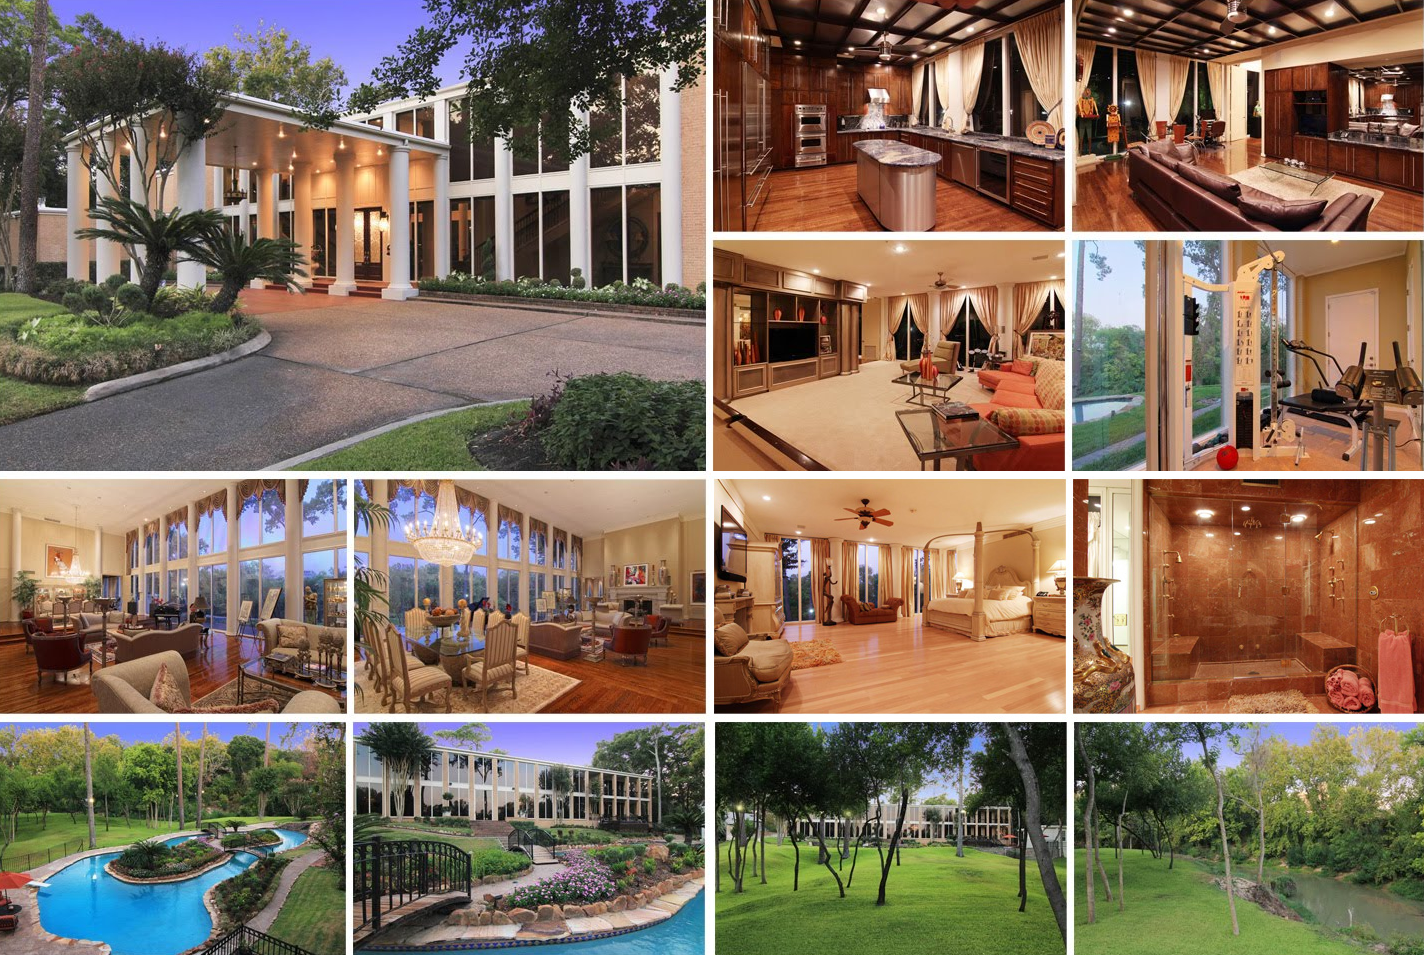 http://1.bp.blogspot.com/-LVx3GgdABD8/TnwC_MNUmBI/AAAAAAAABDI/9uOlpECDYpE/s1600/beyonce_mom_tina_knowles_houston_mansion.png